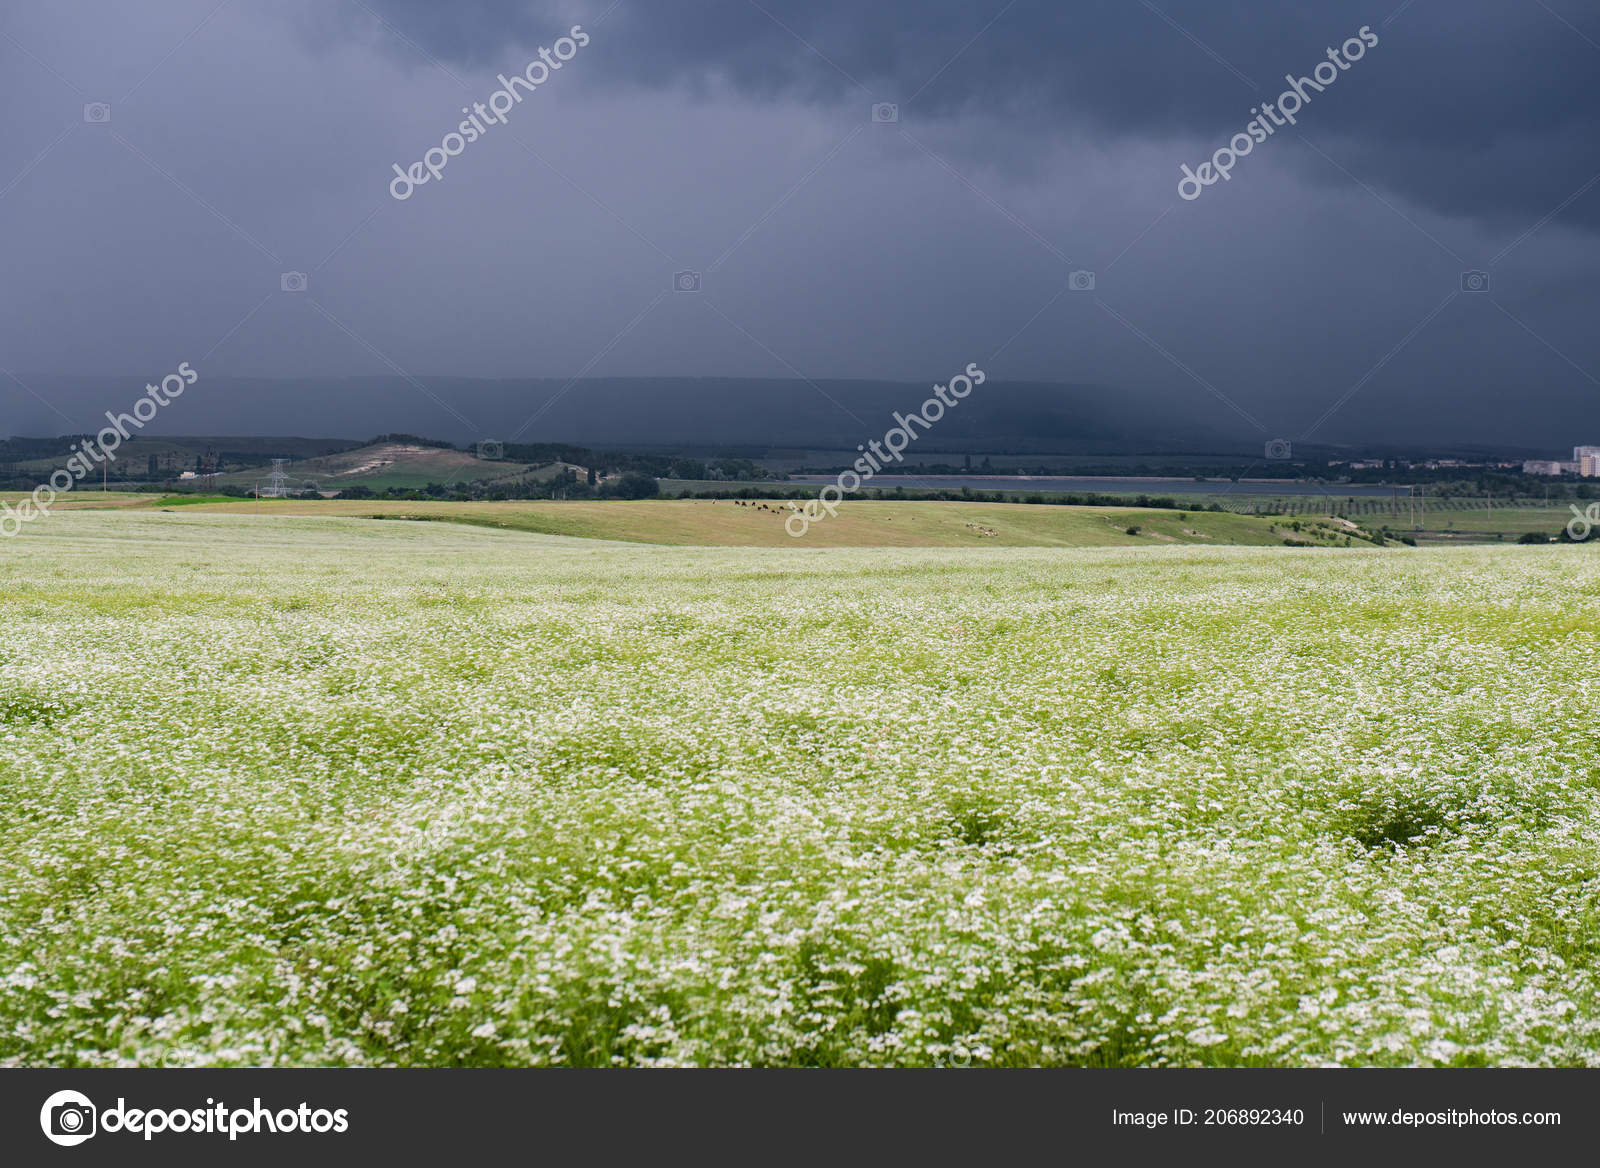 Field Of White Flowers With Storm Clouds Above In Horizontal